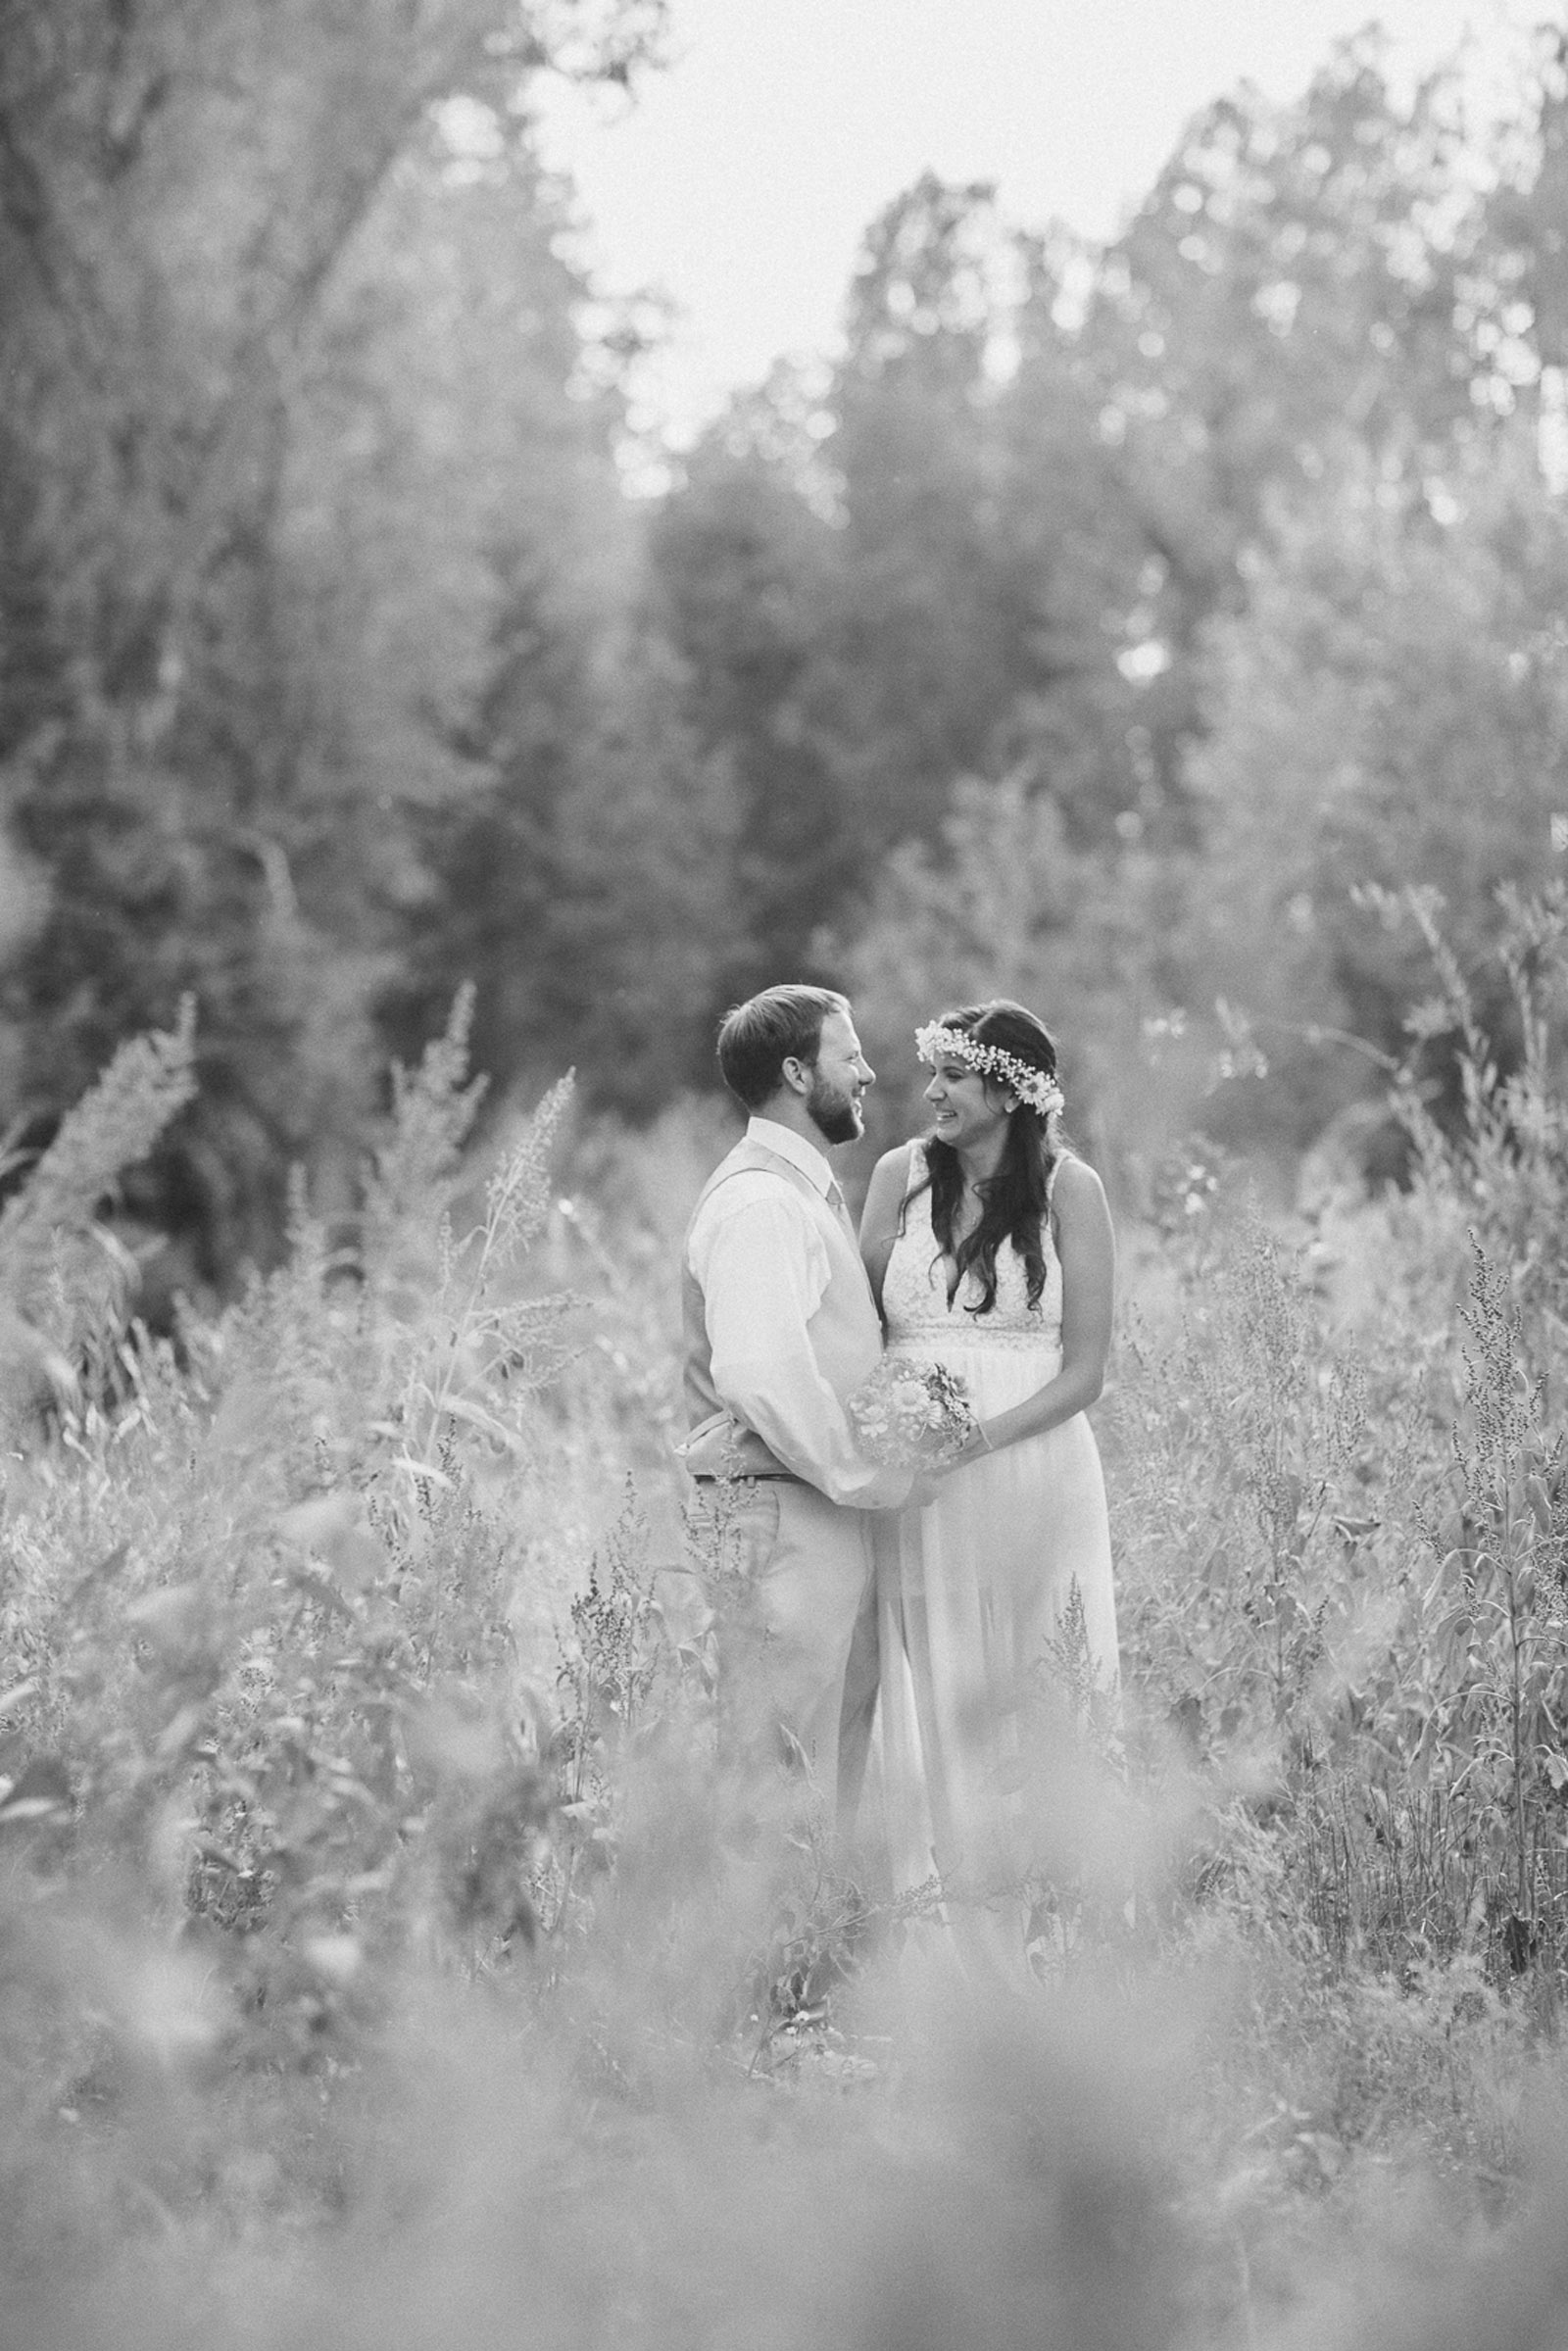 115-wedding-fun-photography-bride-groom-unique-nature-trees